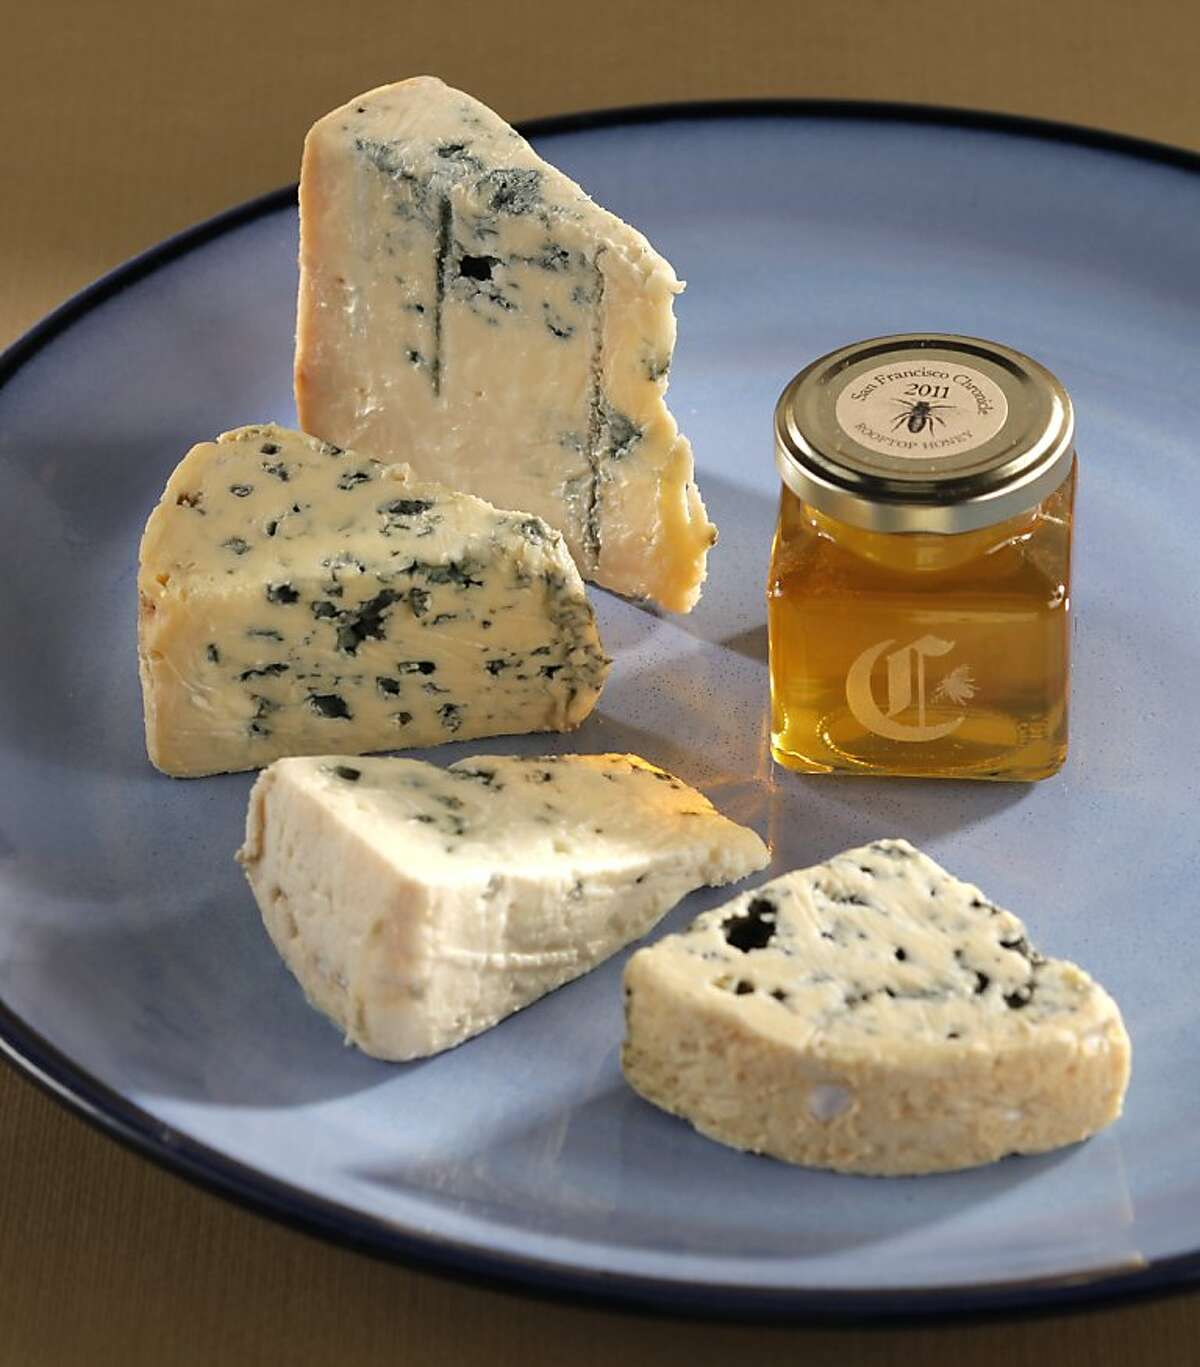 Counter clockwise from the top: 1. Mountain Gorganzola, Igor, 2. Bleu d'Auvergne, 3. Roquefort, Gabriel Coulet, 4. Fourme d'Ambert, L' Or Des Domes as seen in San Francisco, California, on Wednesday, September 21, 2011.